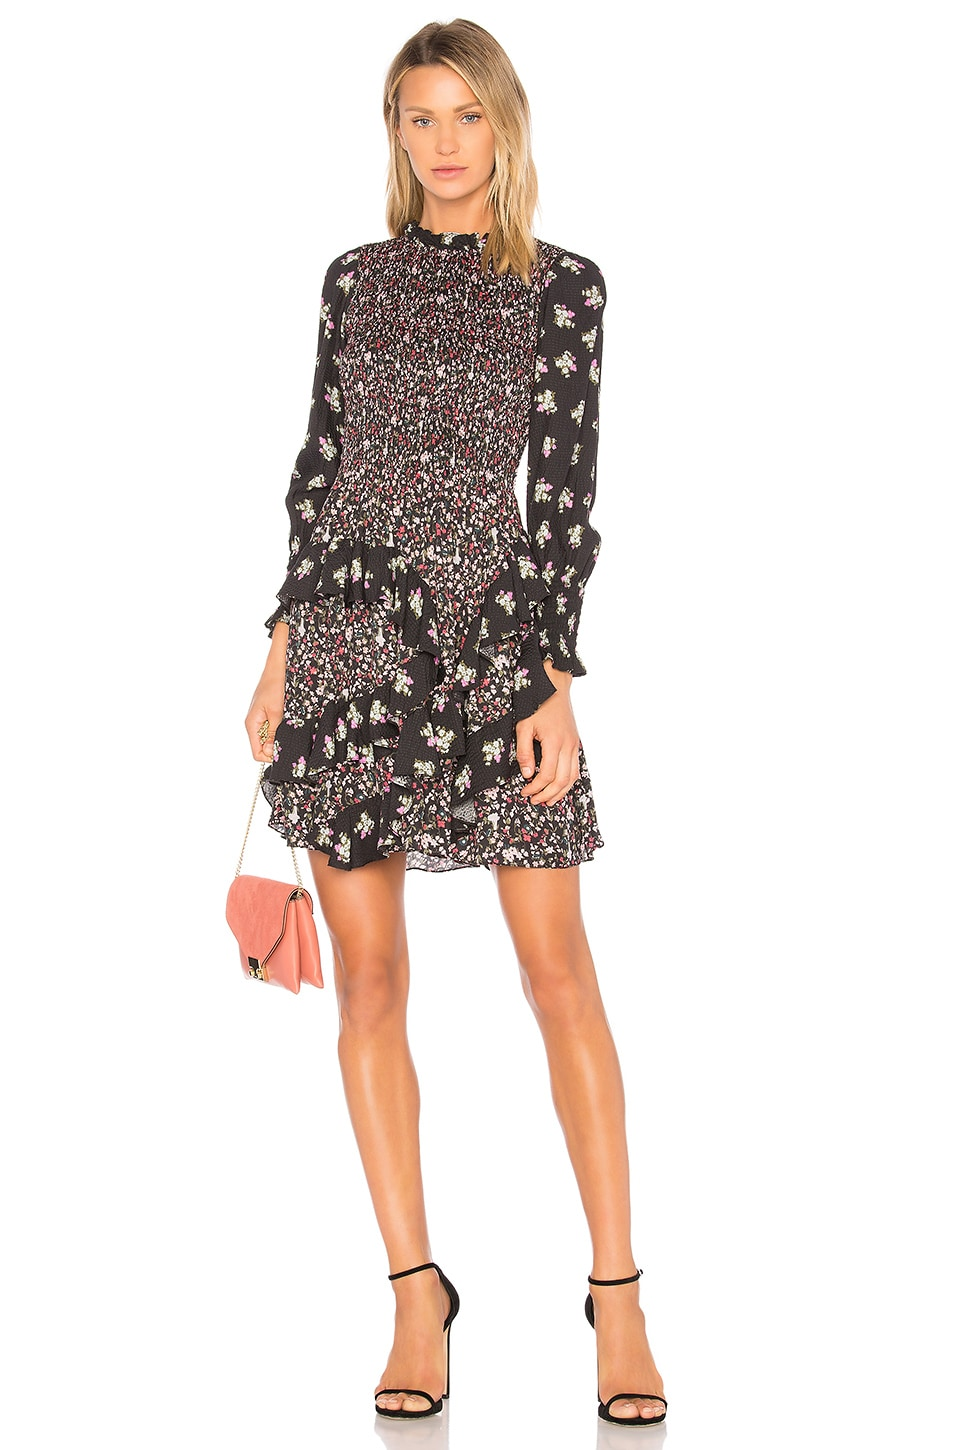 Rebecca Taylor Black Print Mix Dress